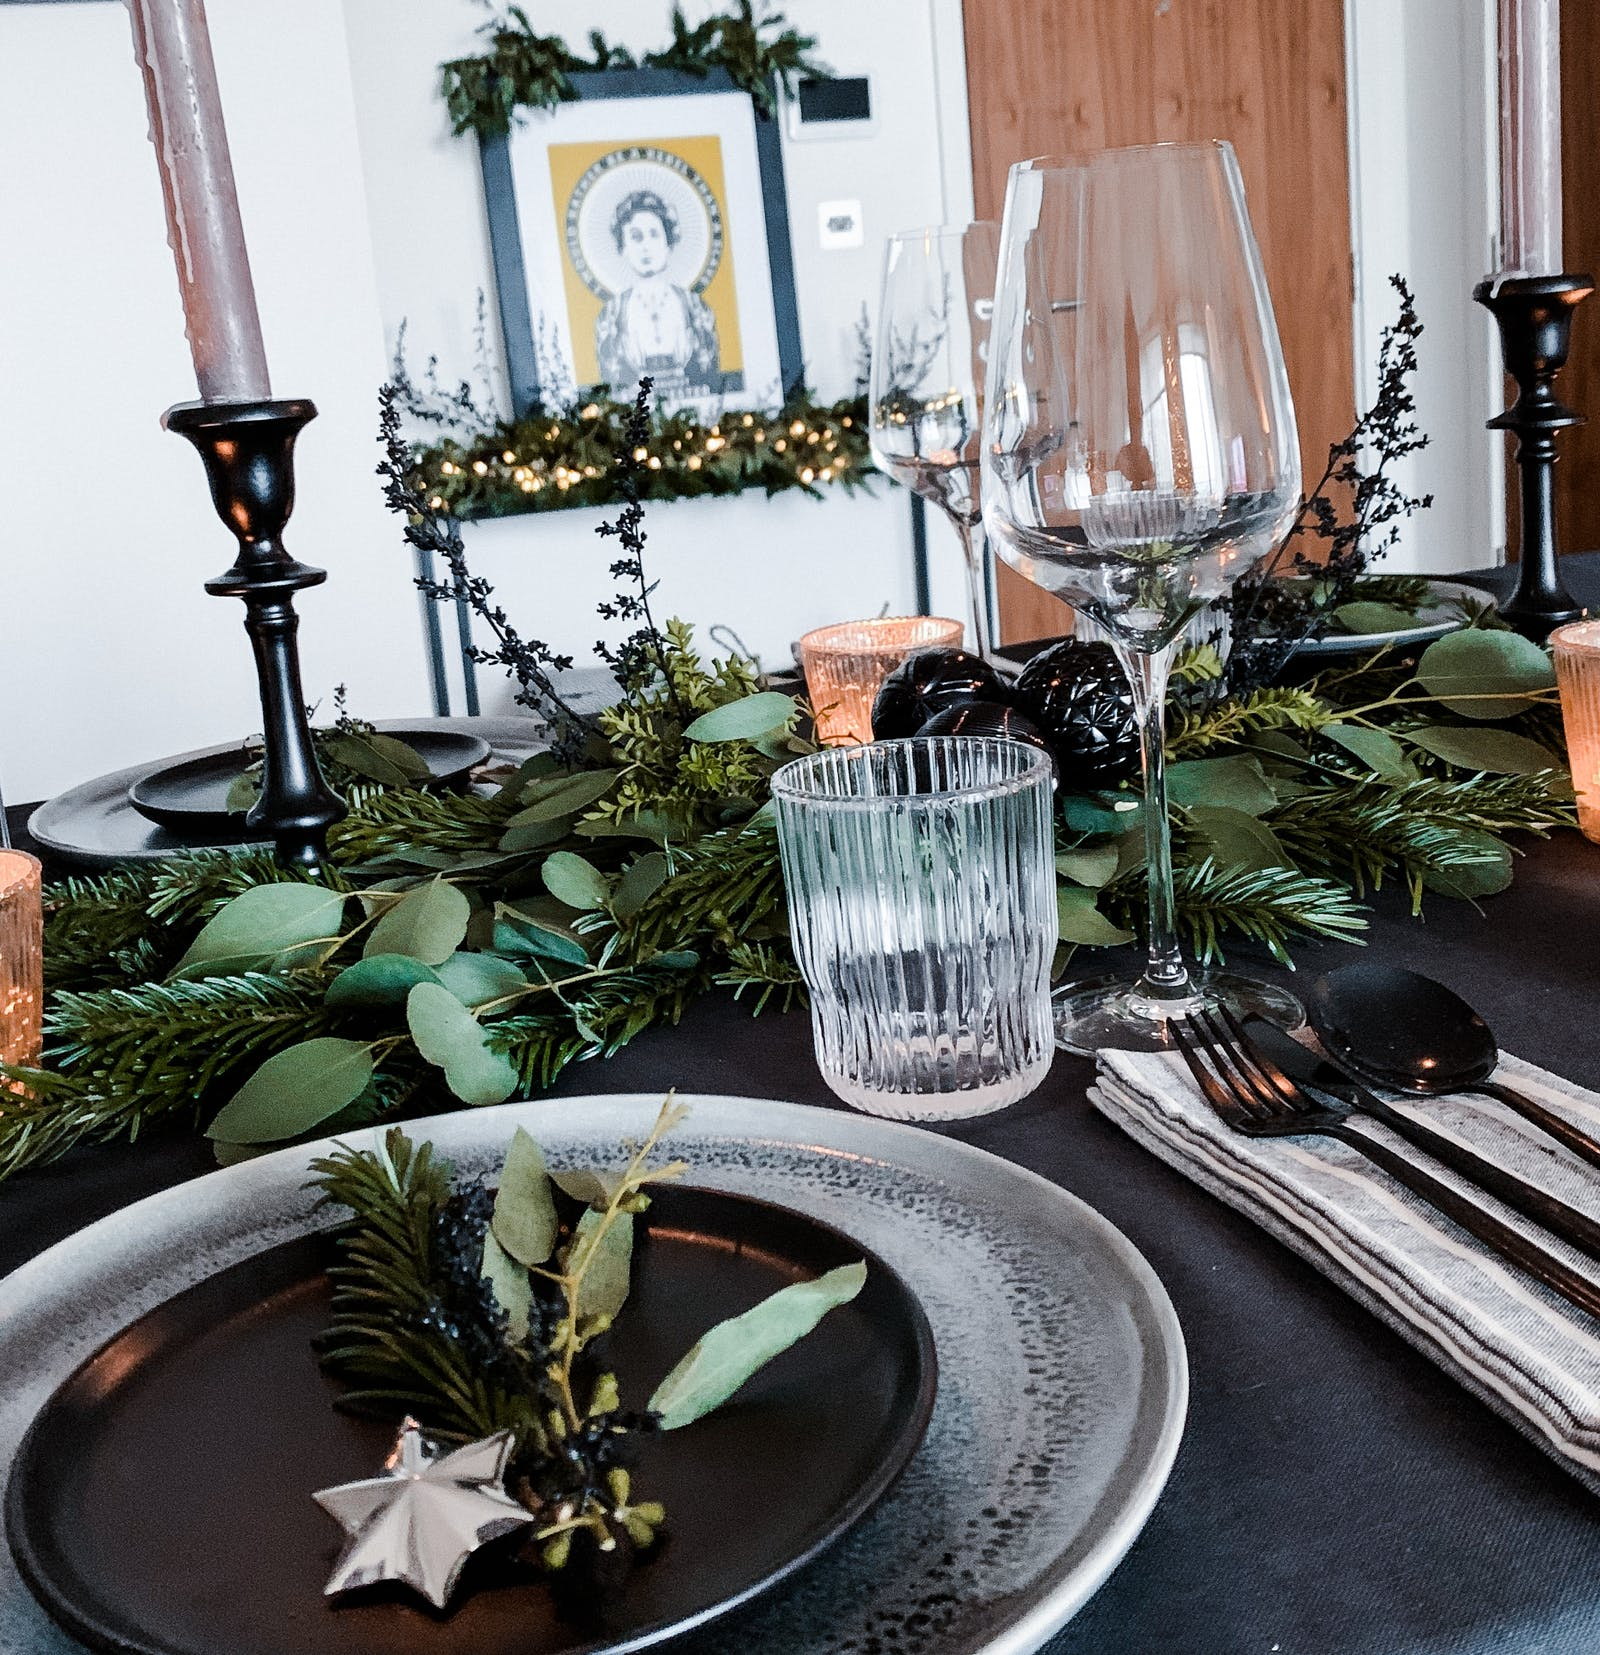 Table decked with fresh foliage, glasses and plates